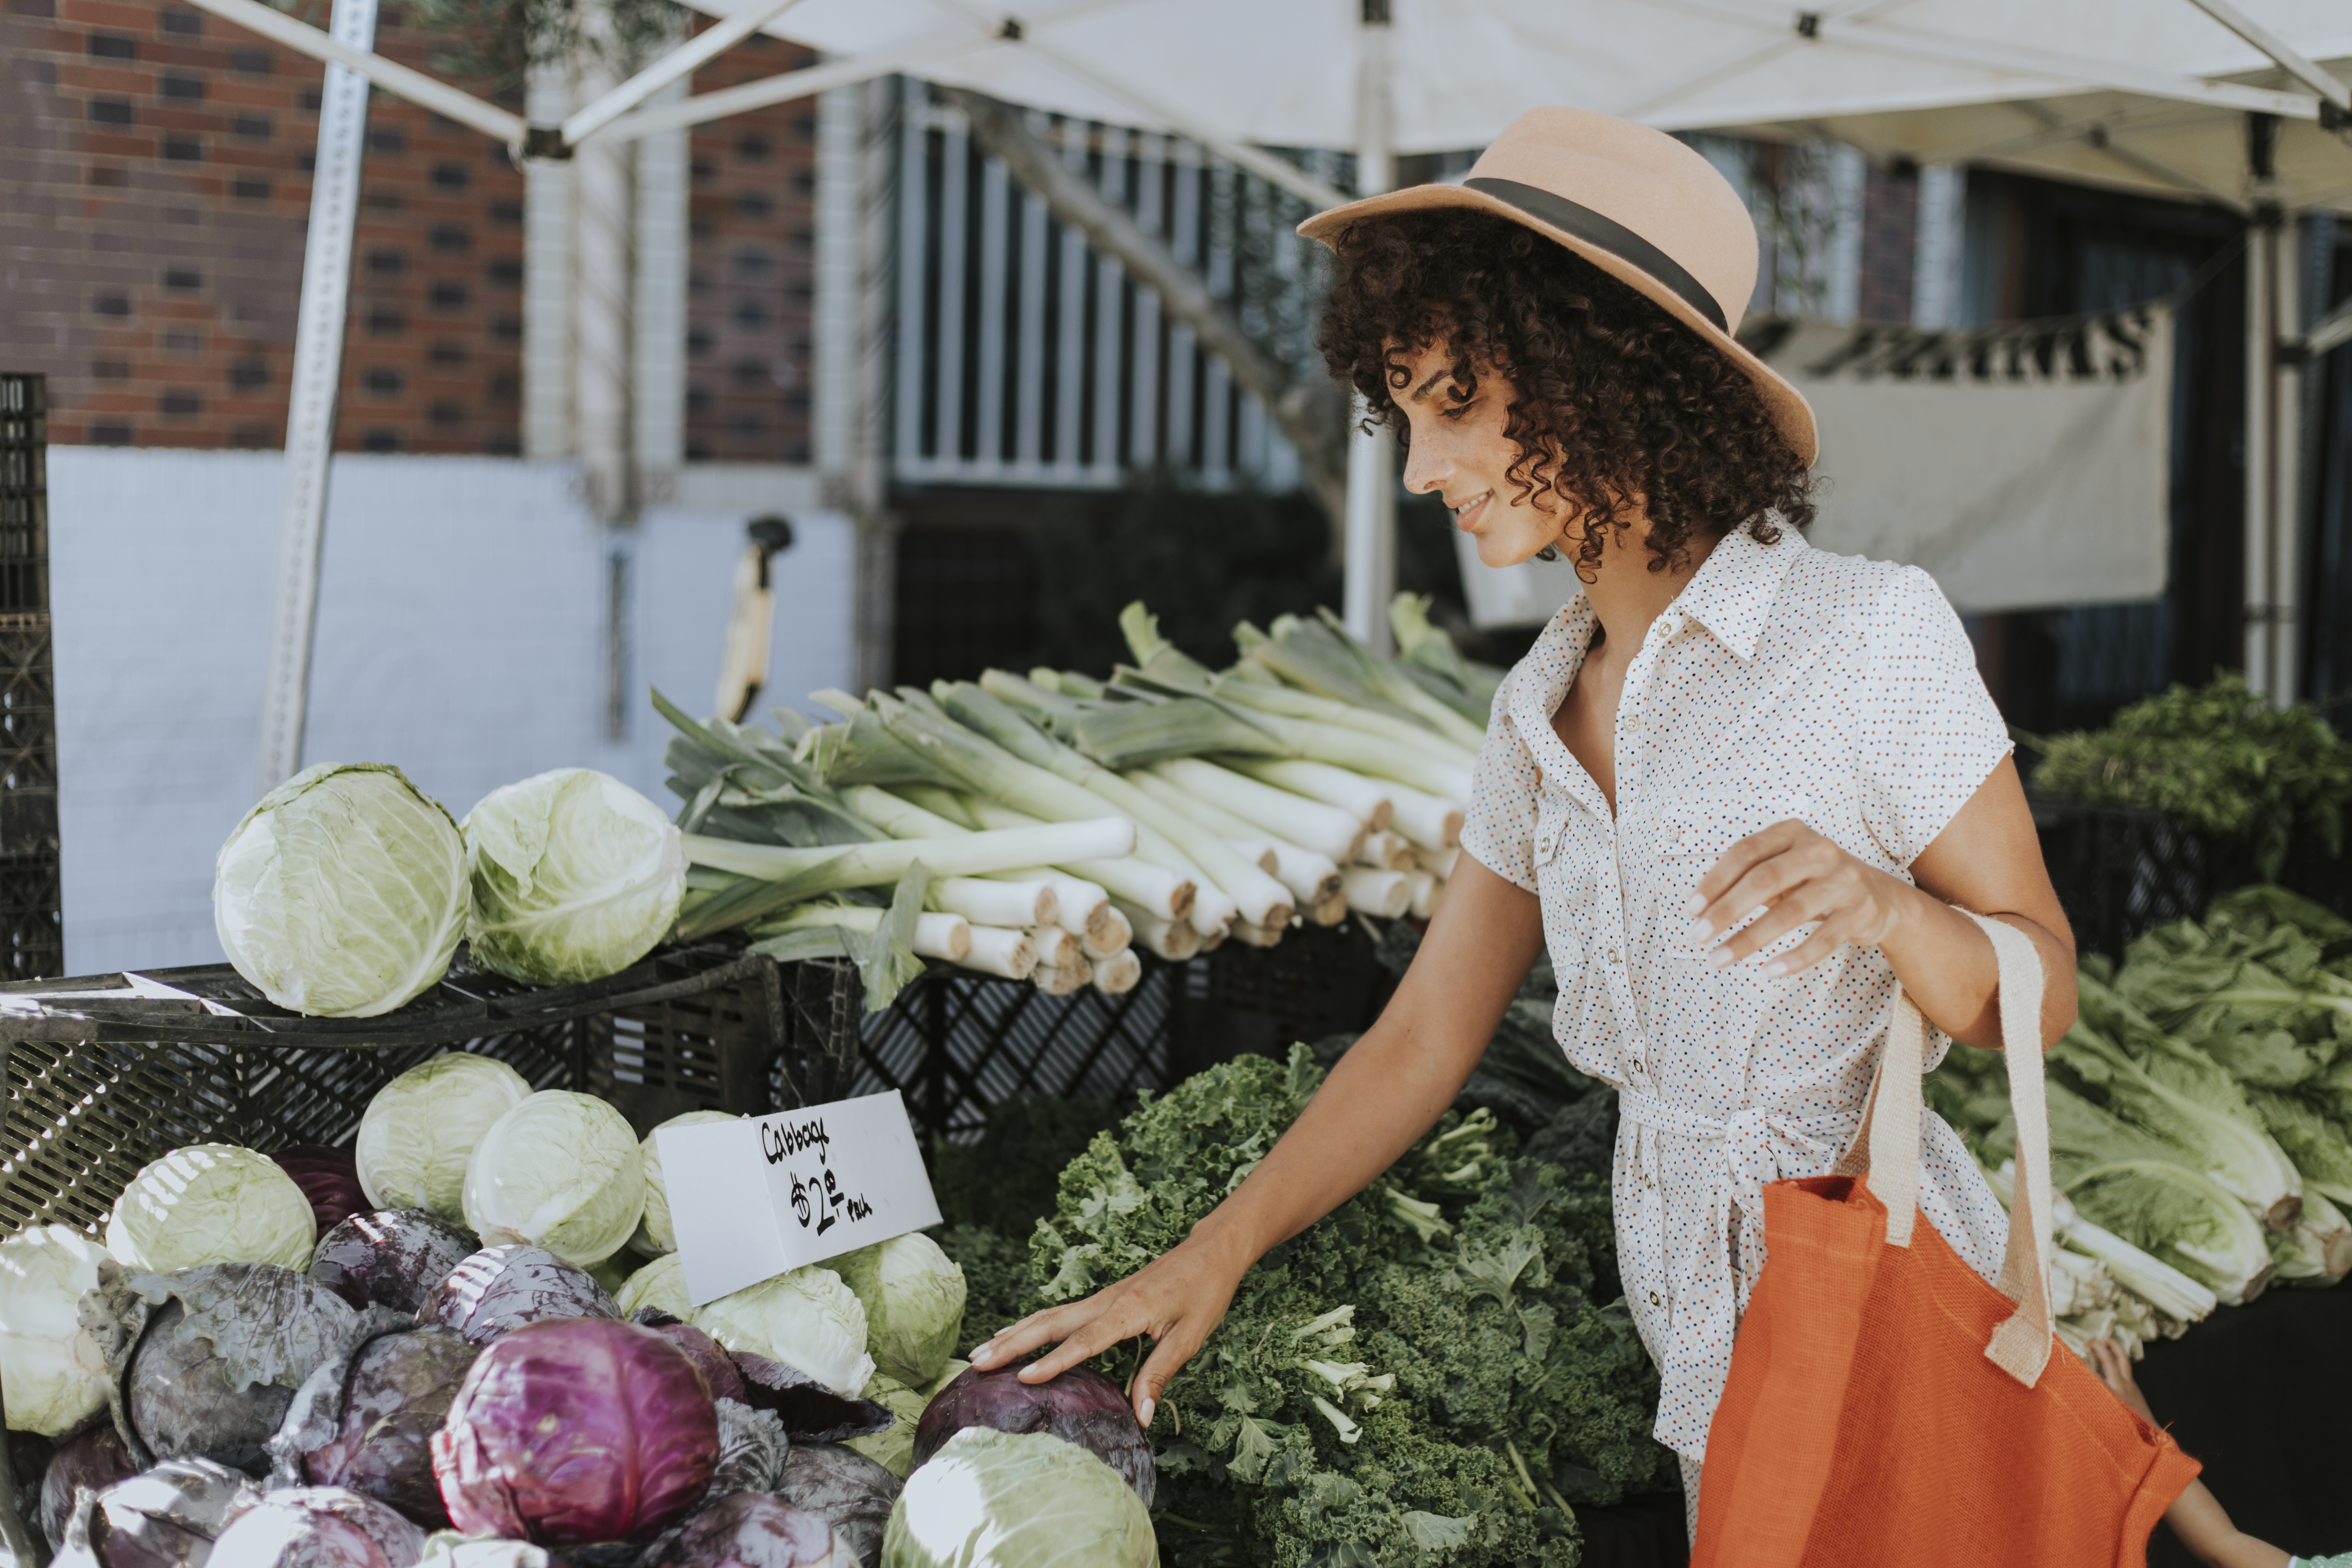 Healthy woman buying vegetables at a farmers market